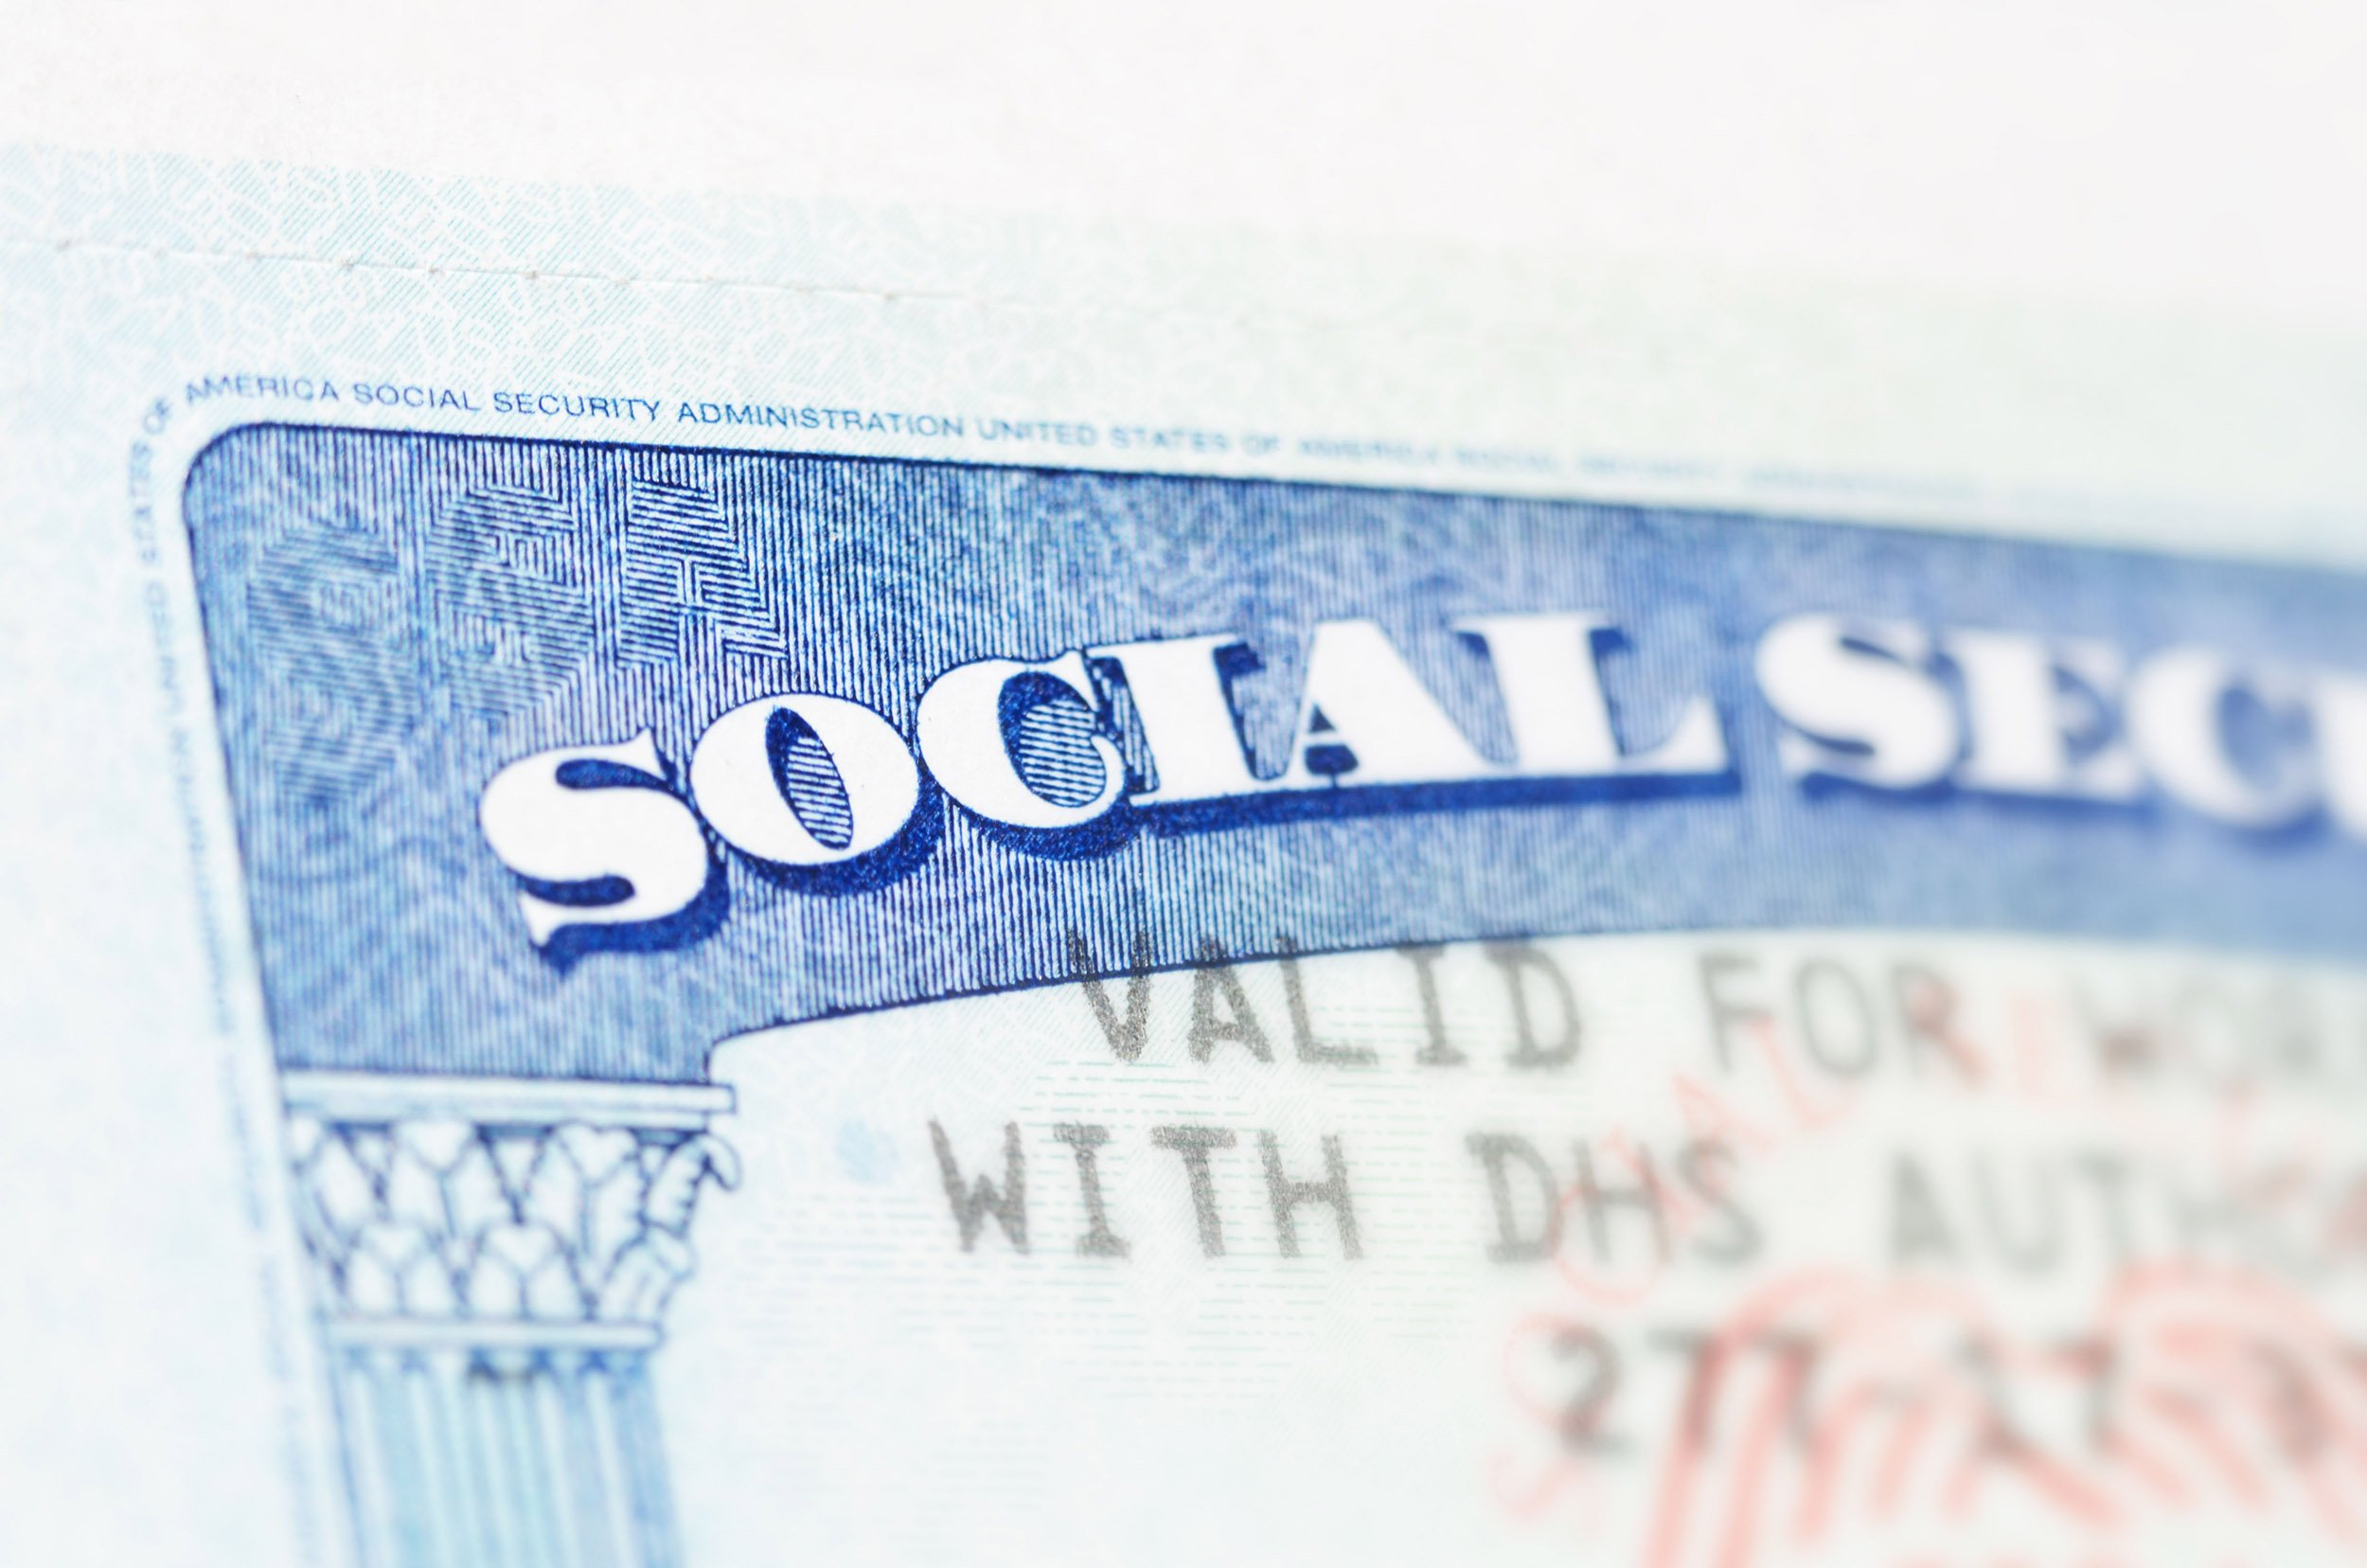 01_21_SocialSecurity_01